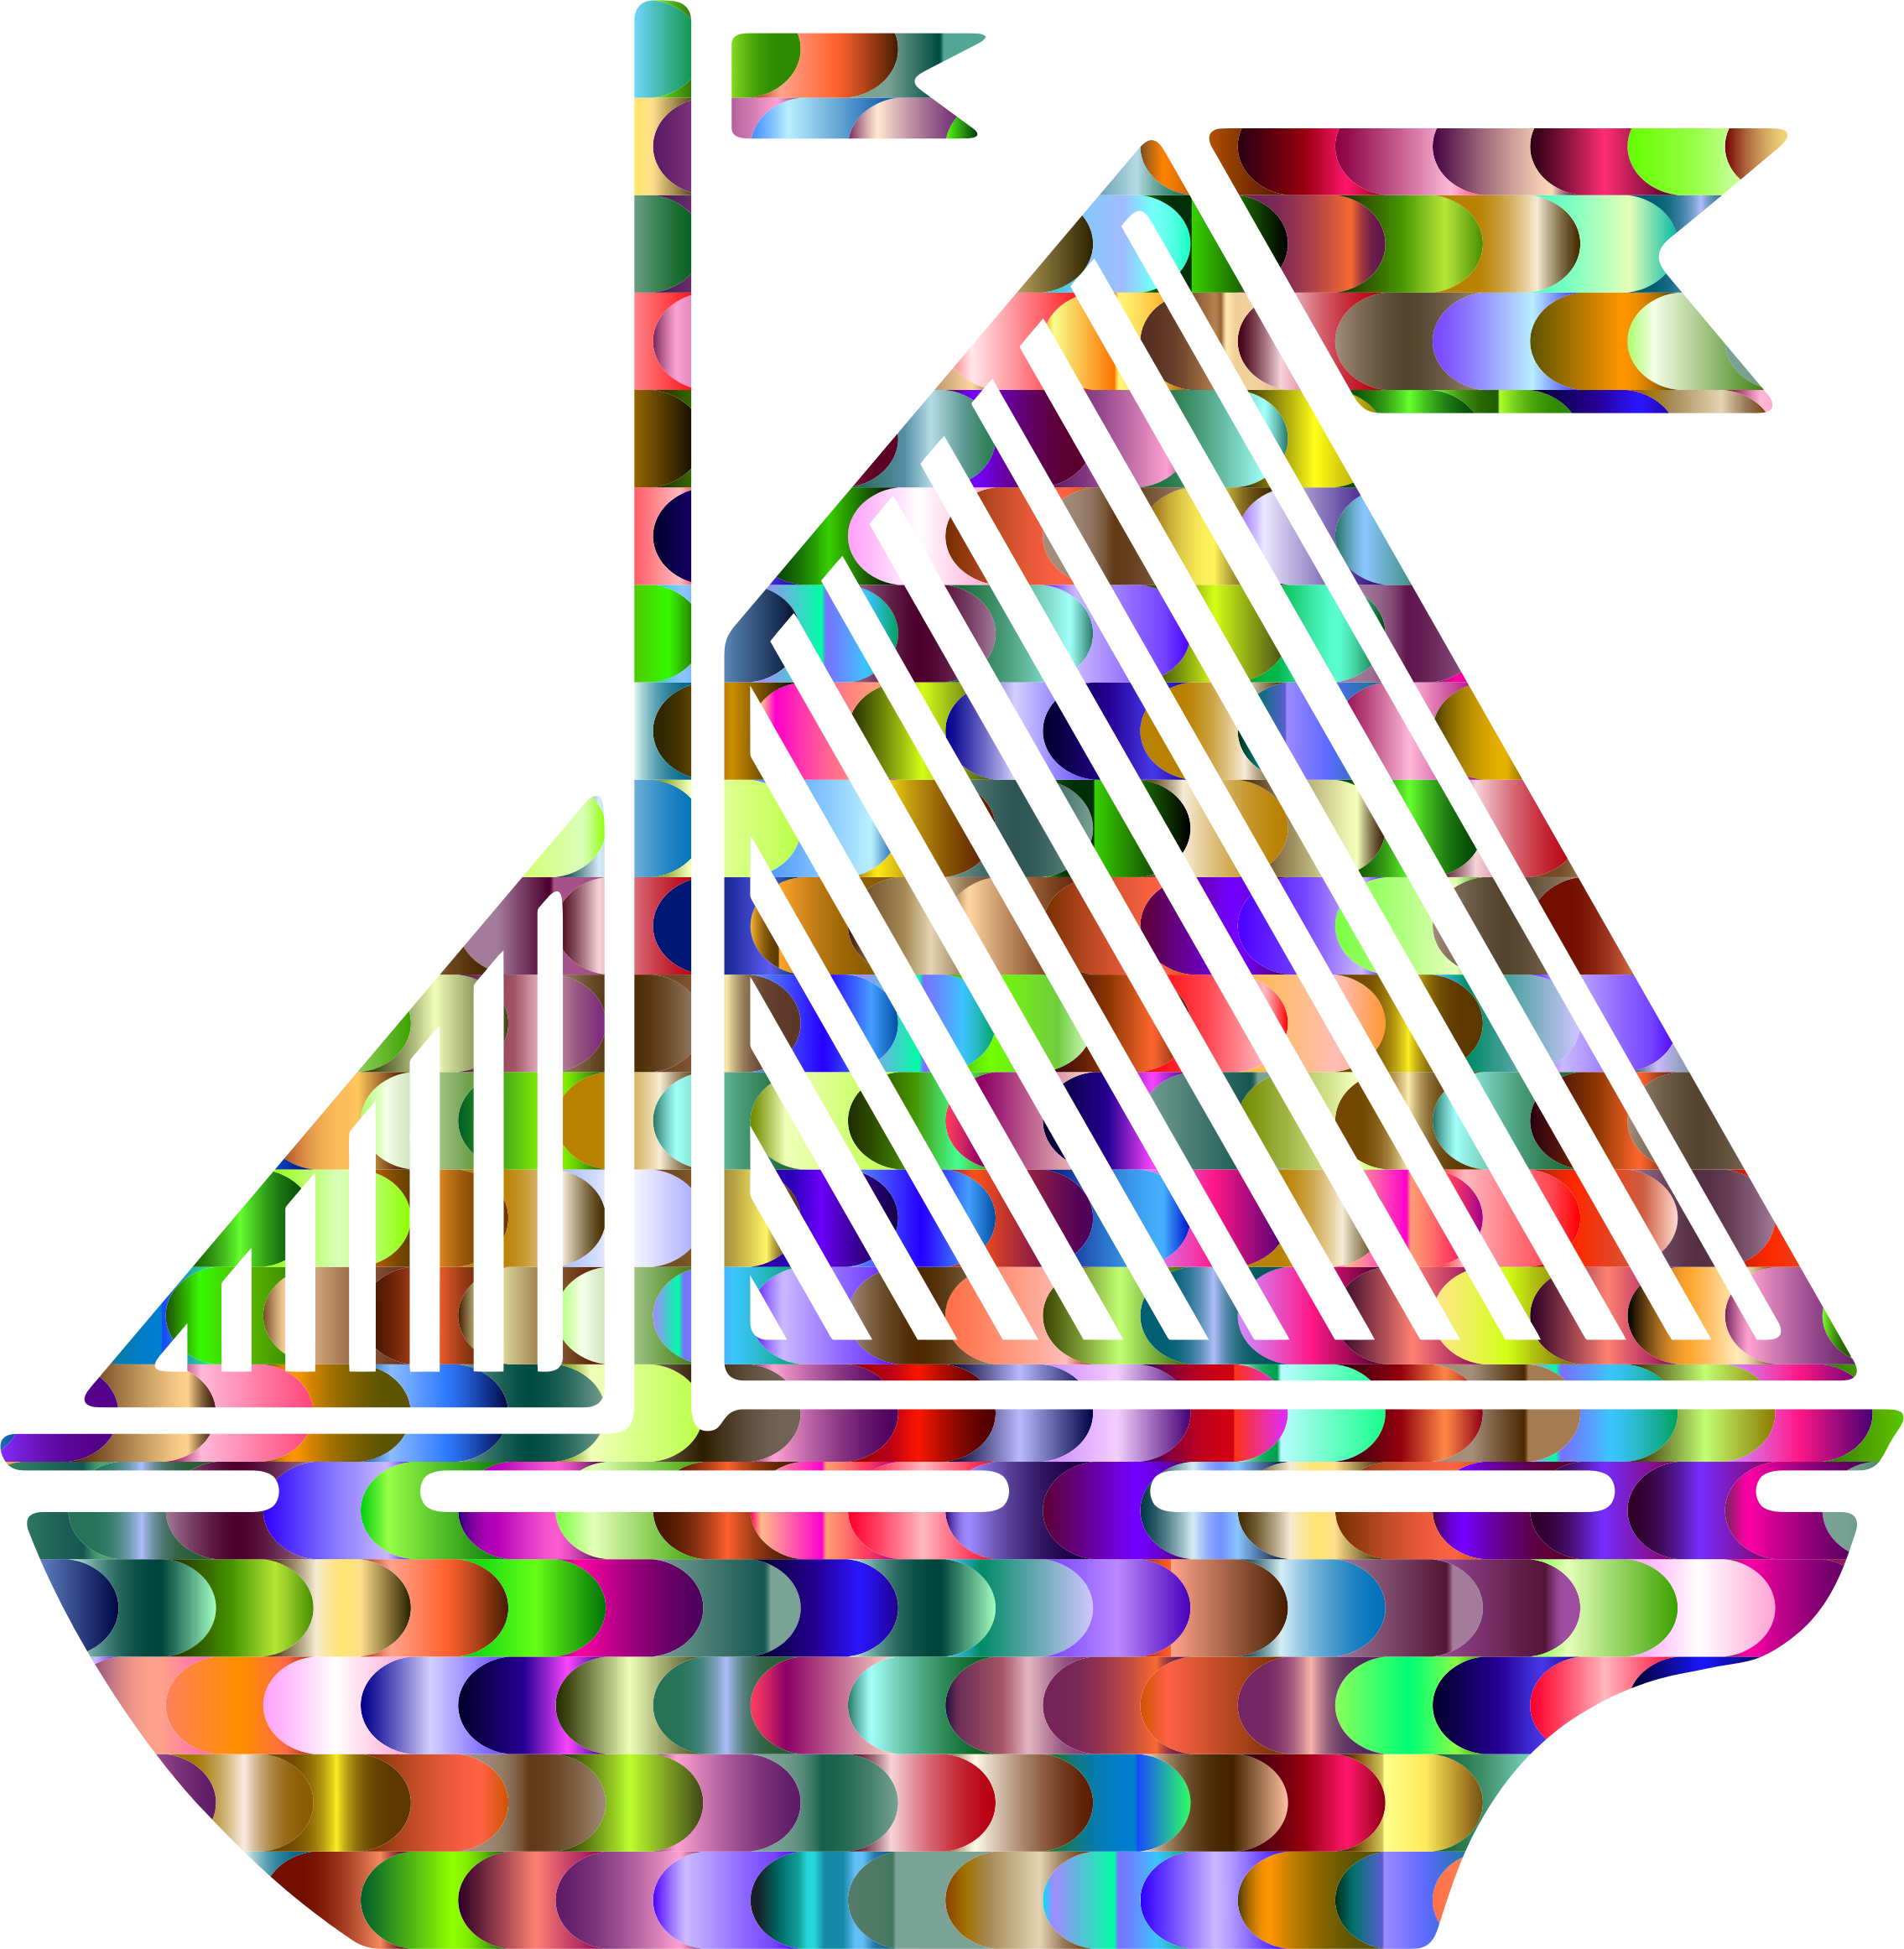 Prismatic Interlocking Waves Sail Boat Silhouette by GDJ